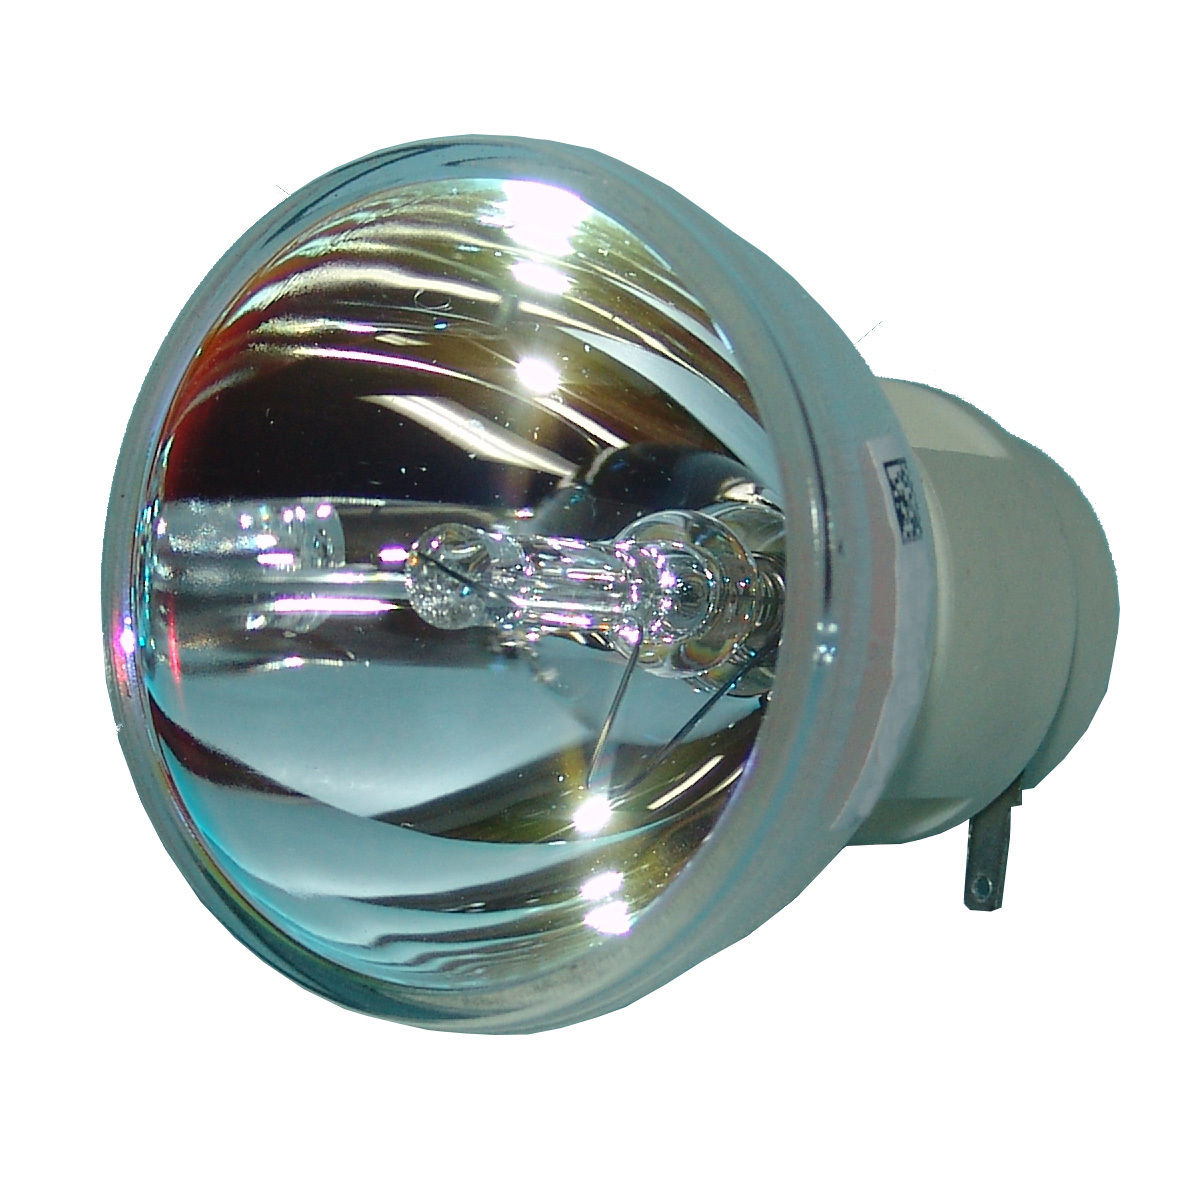 Compatible Bare Bulb RLC-071 RLC071 for VIEWSONIC PJD6253 PJD6383 PJD6383s PJD6553w PJD6683w Projector Bulb Lamp without housing s quire бритвенный набор s quire 6253